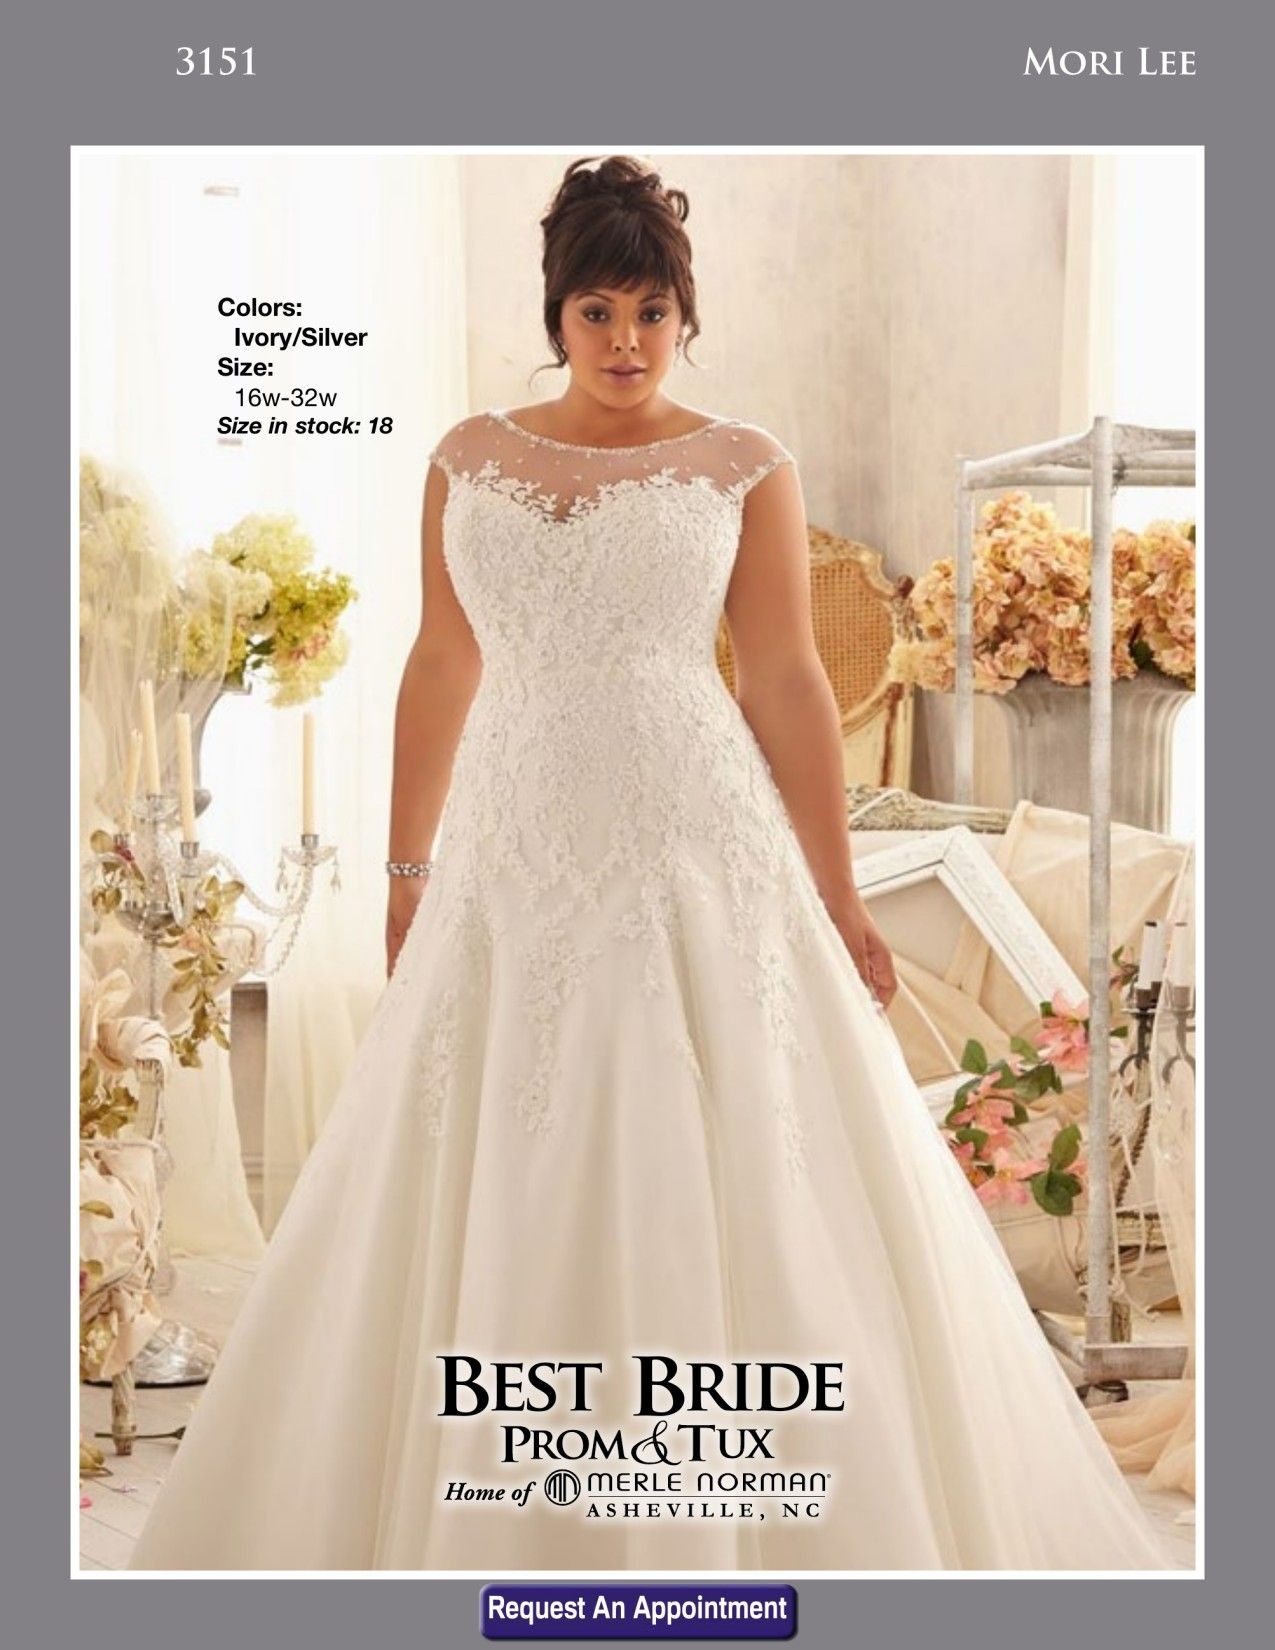 This Morilee Bridal Dress Has Venice Lace Liwues On Net With Crystal Beaded Trim A Bateau Neckline And Natural Waist Julietta Plus Size